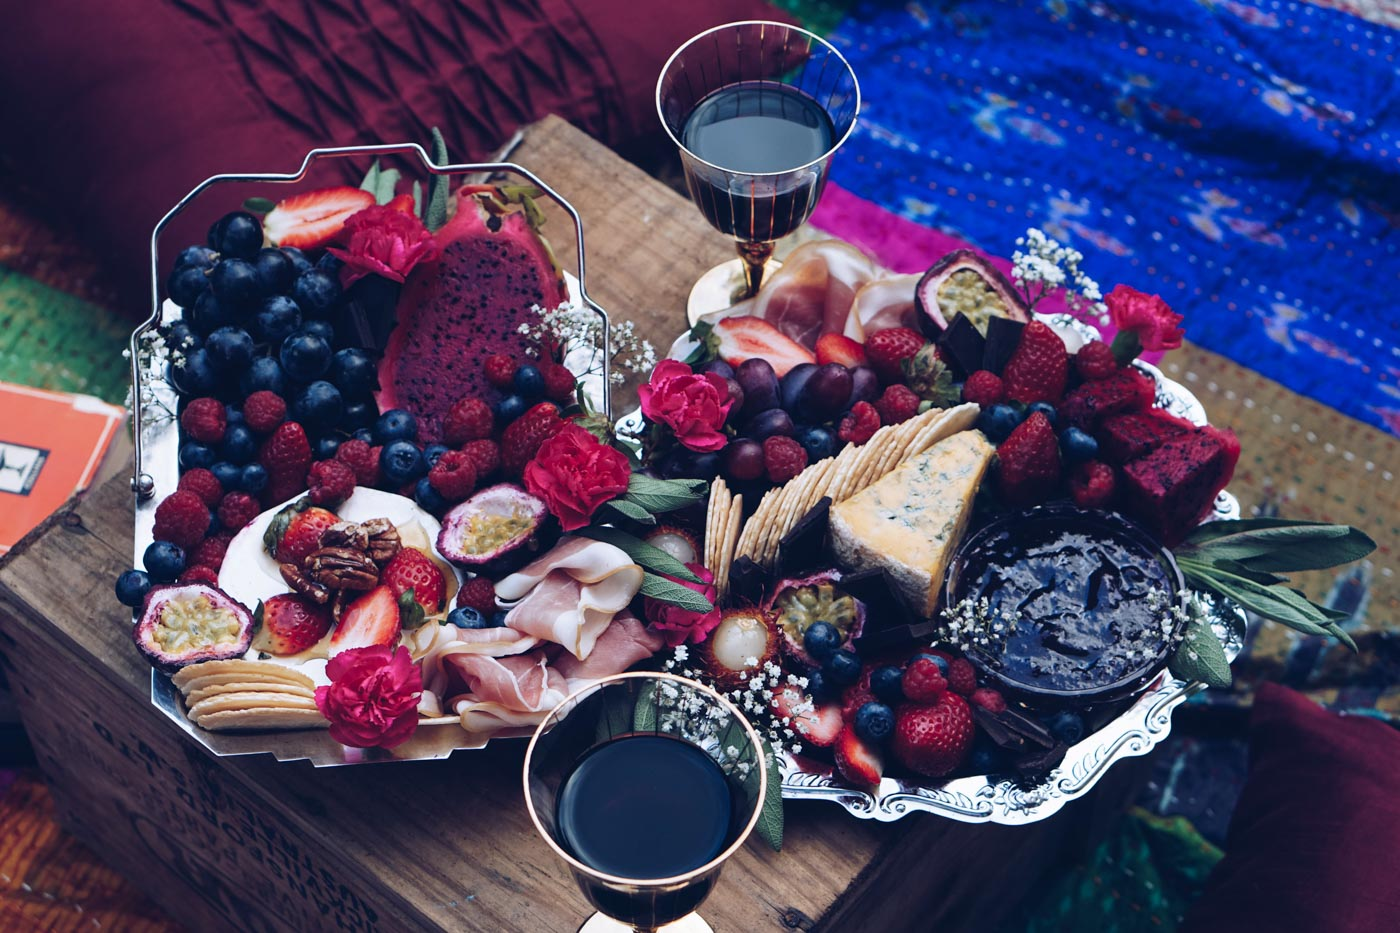 the_Collection_co_grazing_table_cairns_weddings_catering_small_platter-5-2.jpg